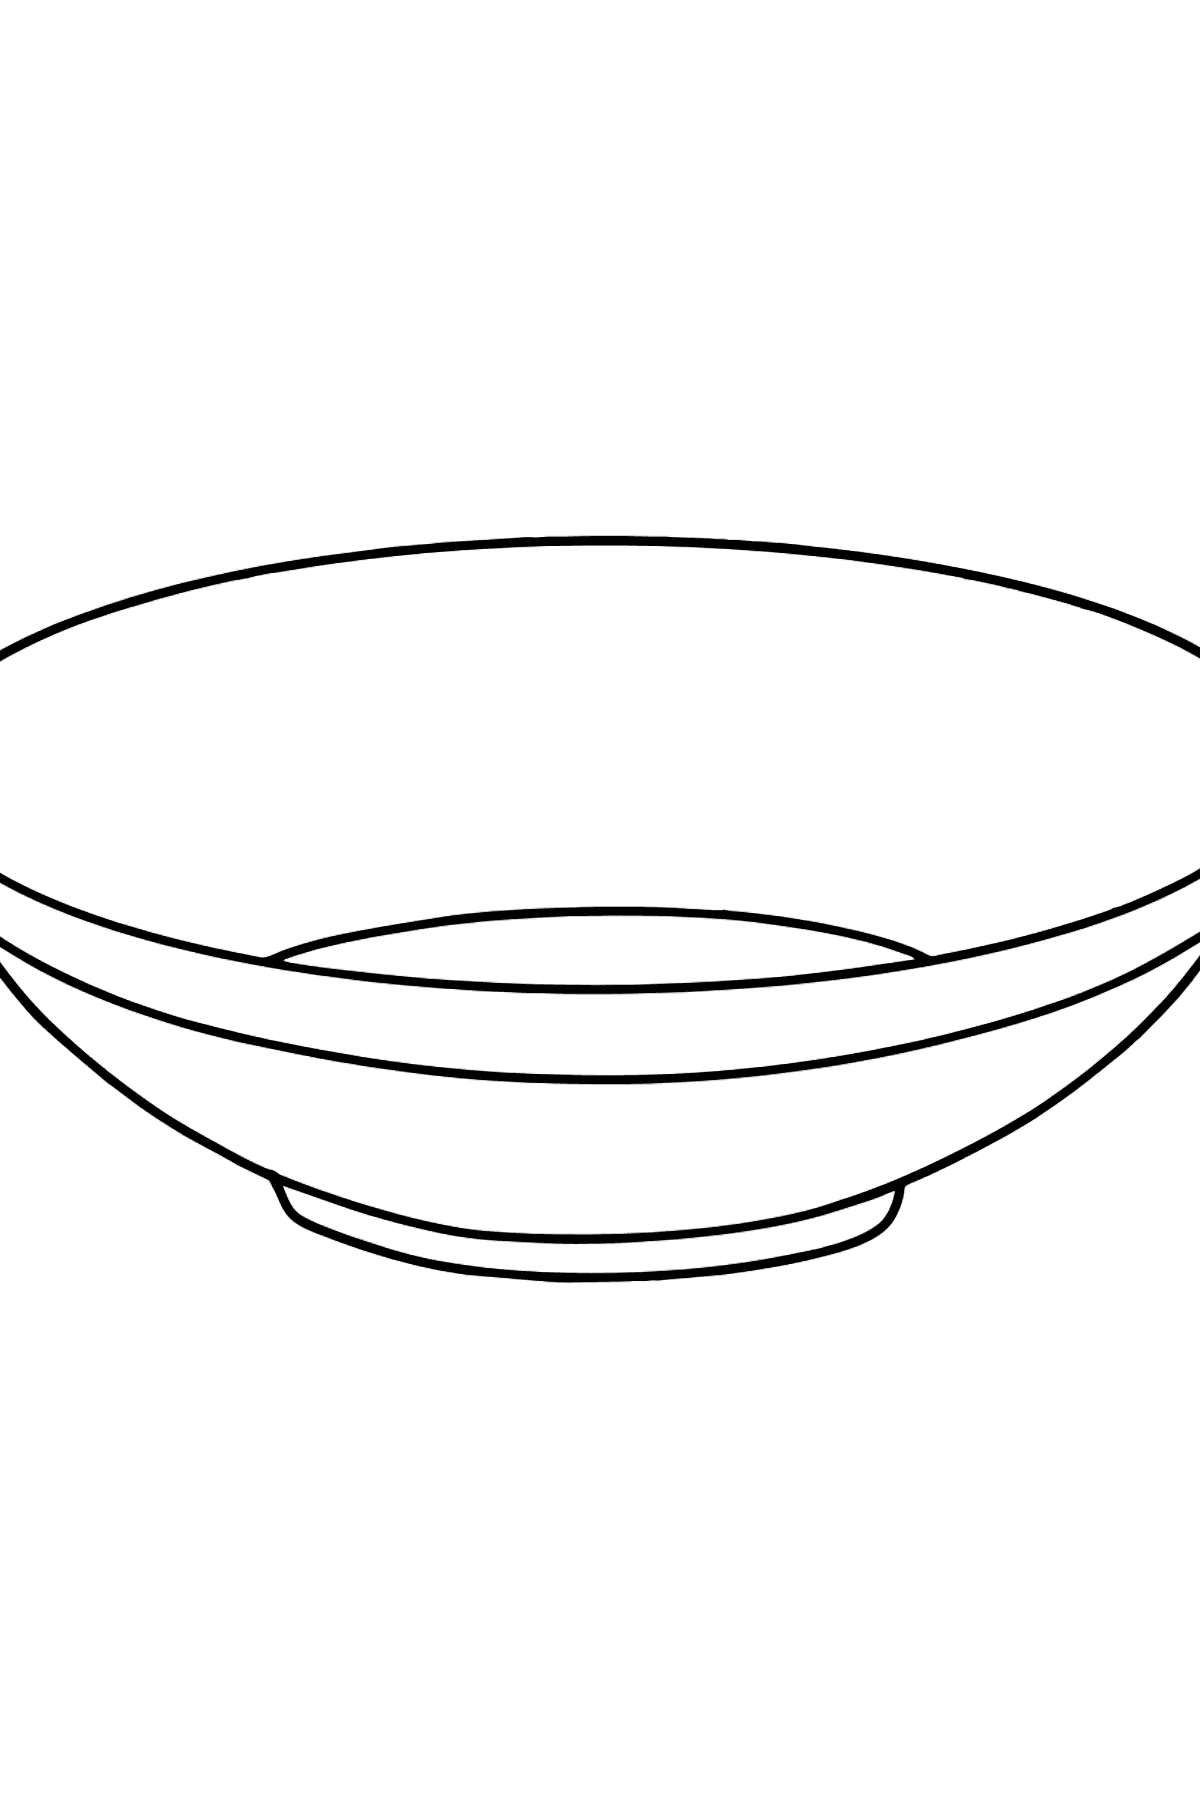 Plate coloring page - Coloring Pages for Kids